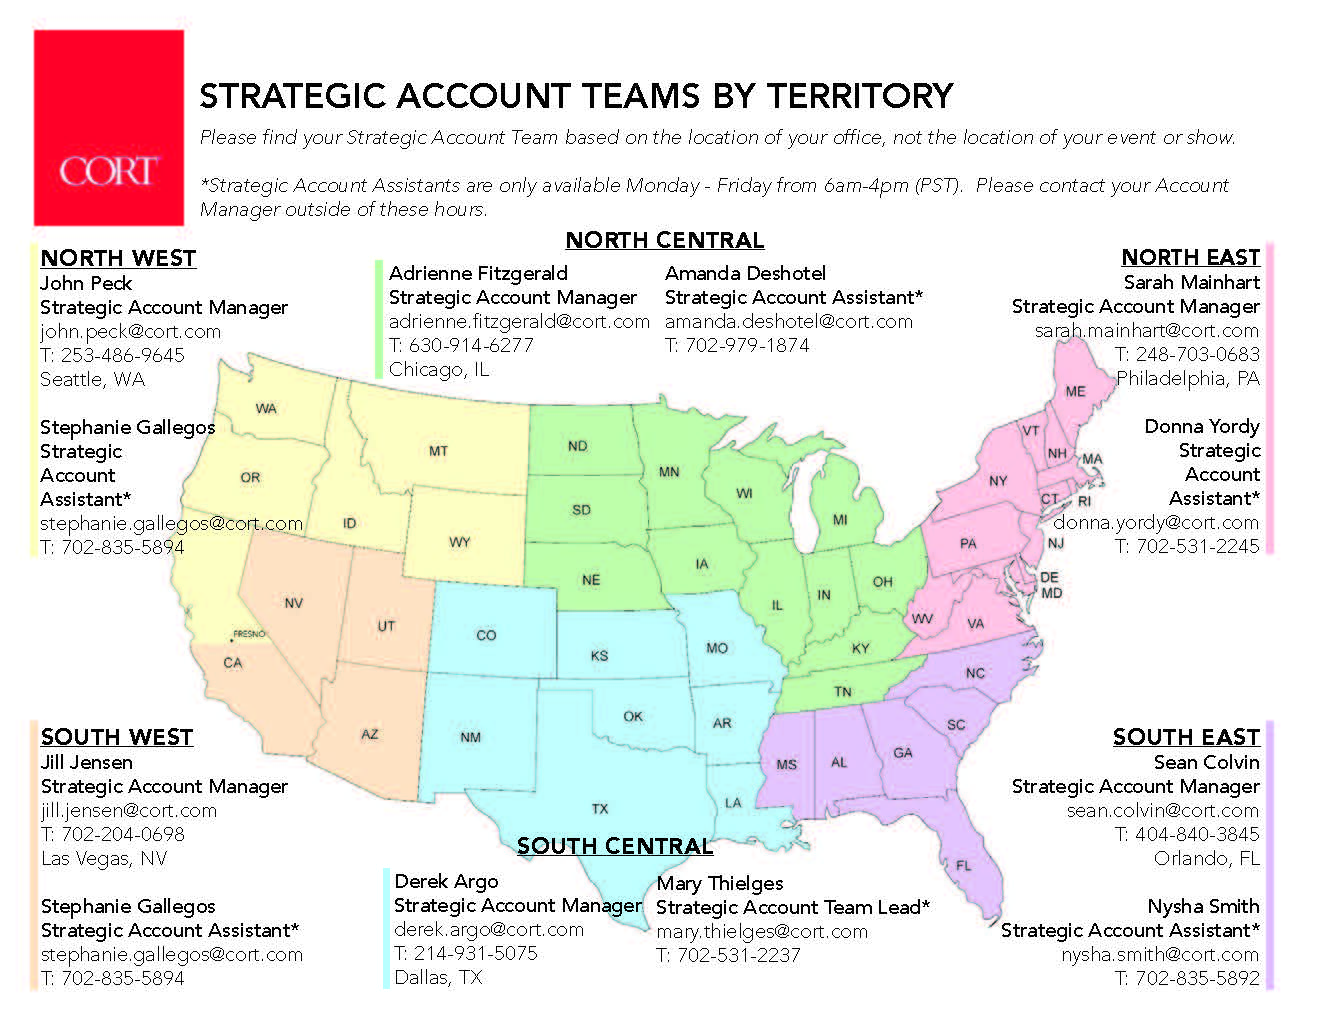 CORT Furniture Account Teams by Territory